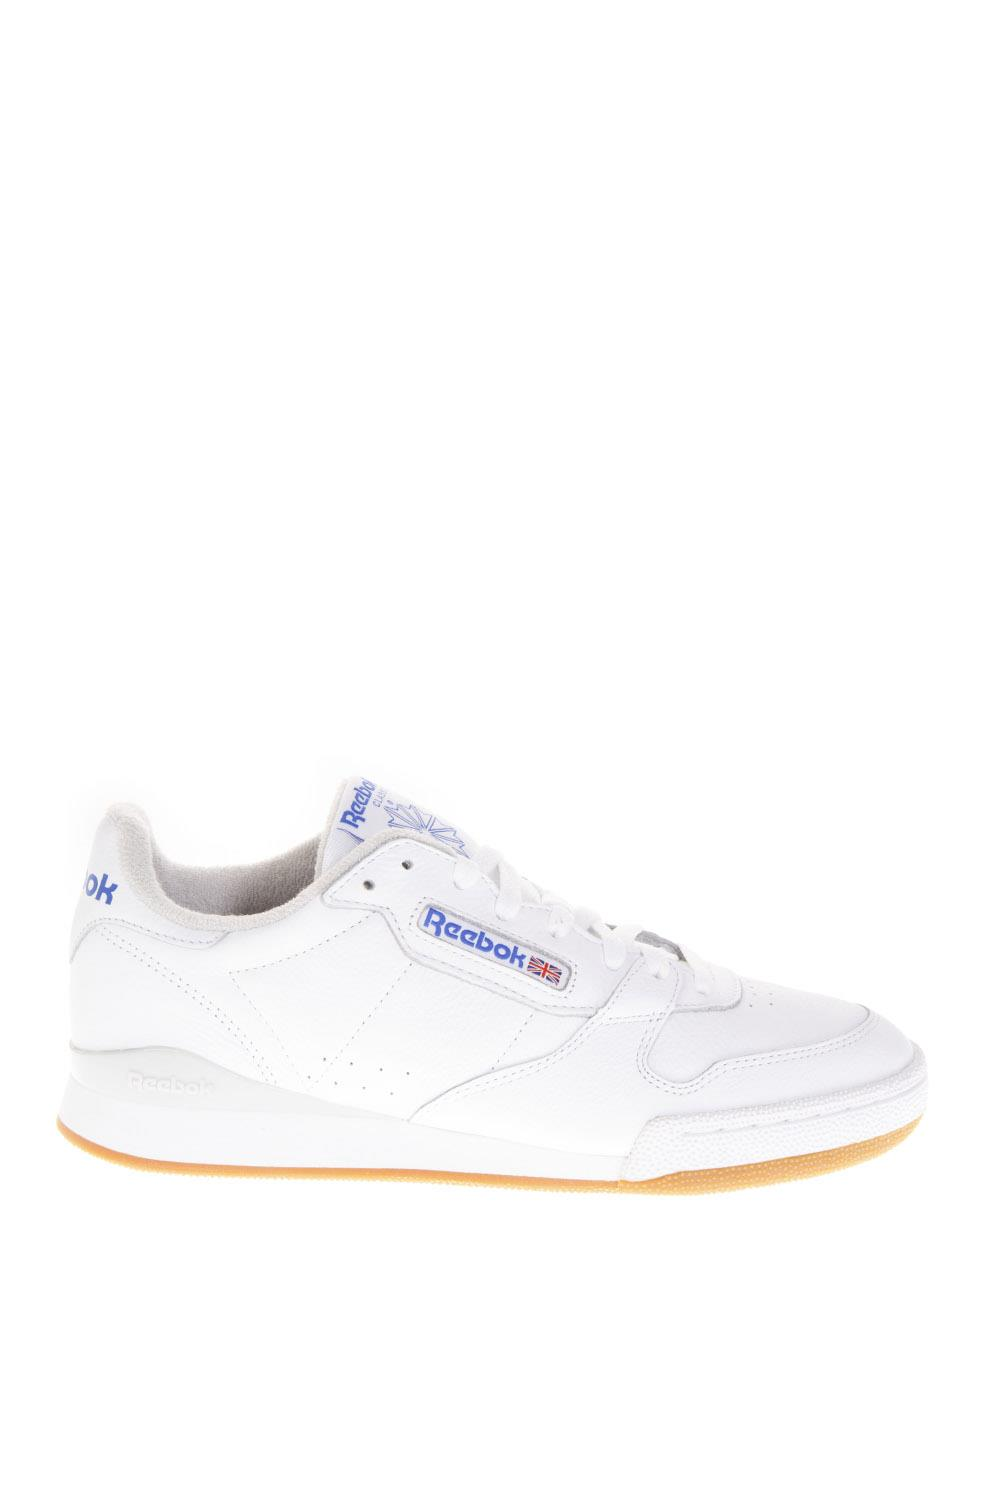 5ddbfdd759832 PHASE 1 MU WHITE LEATHER SNEAKERS FW 2018 - REEBOK - Boutique Galiano